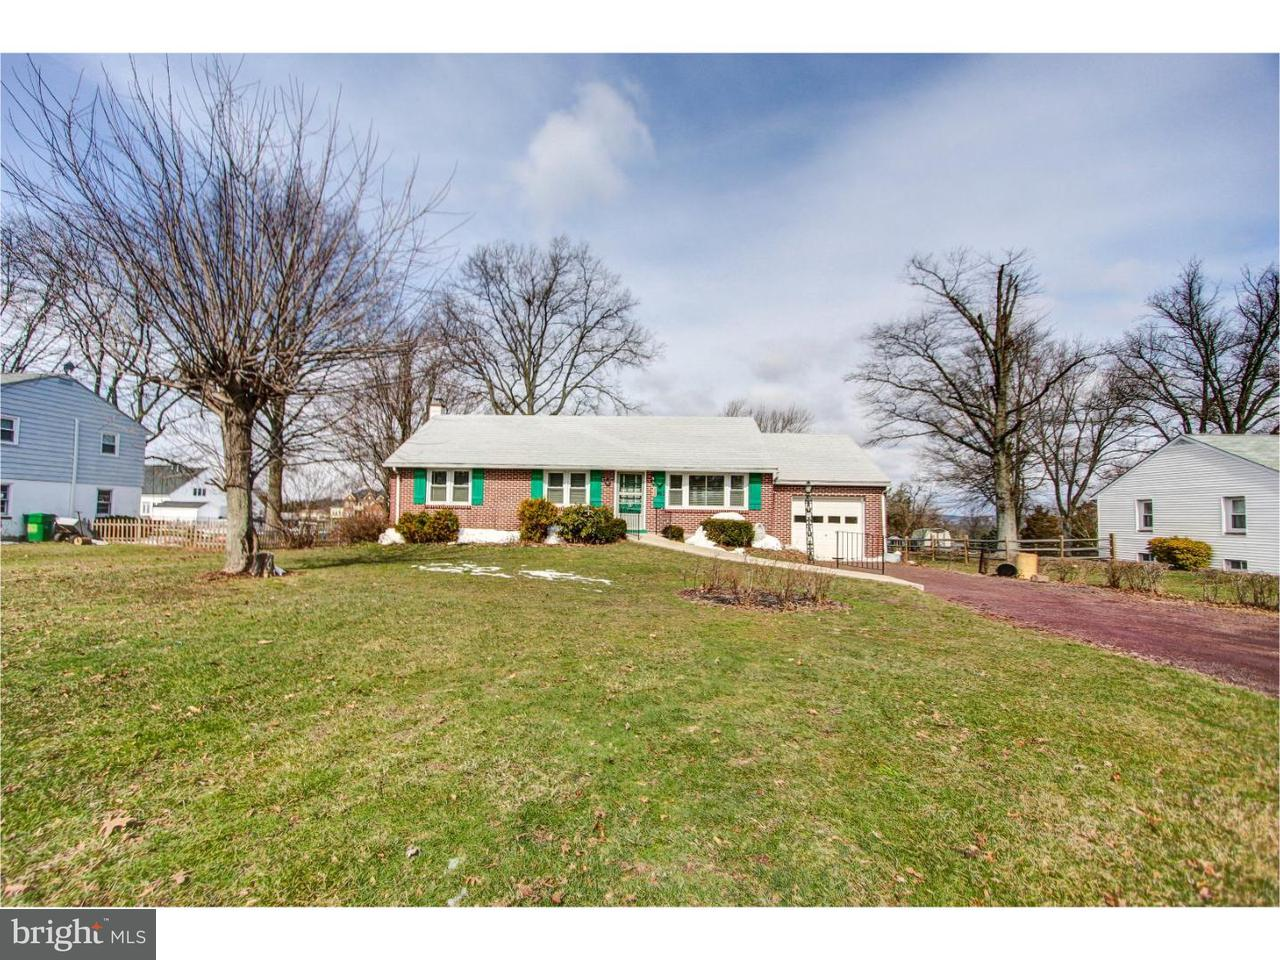 962  Route 113 Sellersville, PA 18960